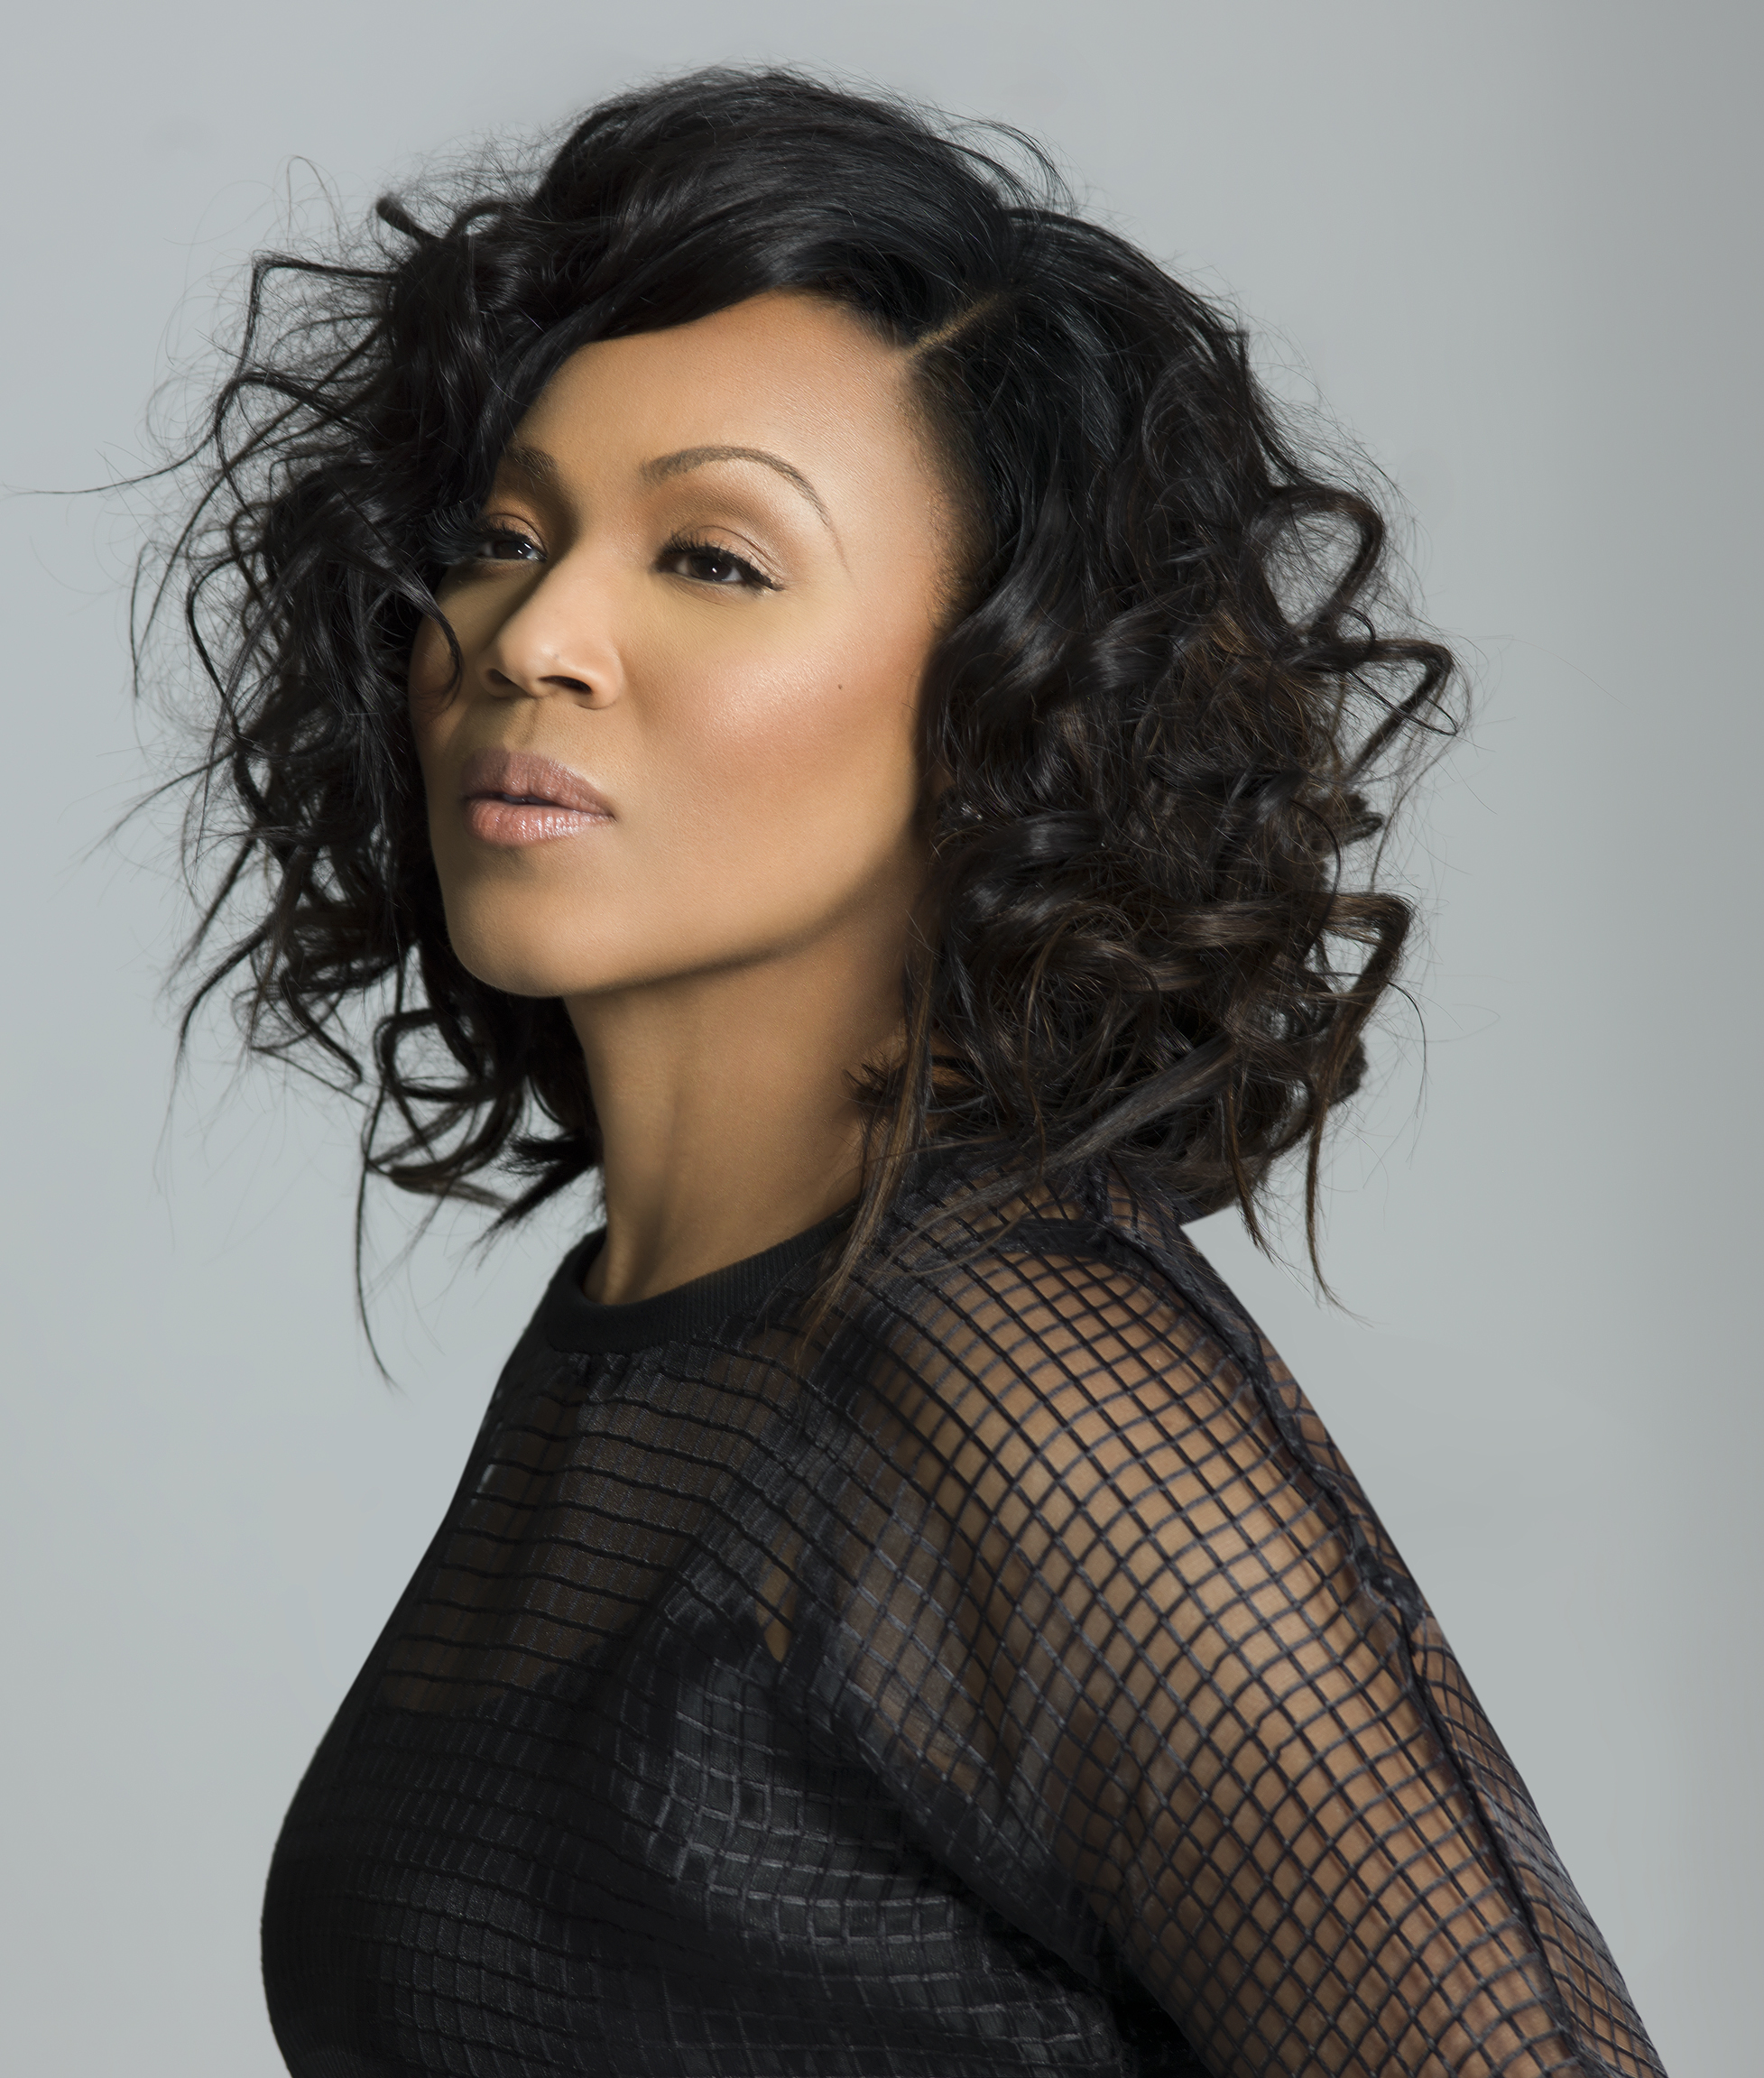 Erica campbell interview and photoshoot - 1 6